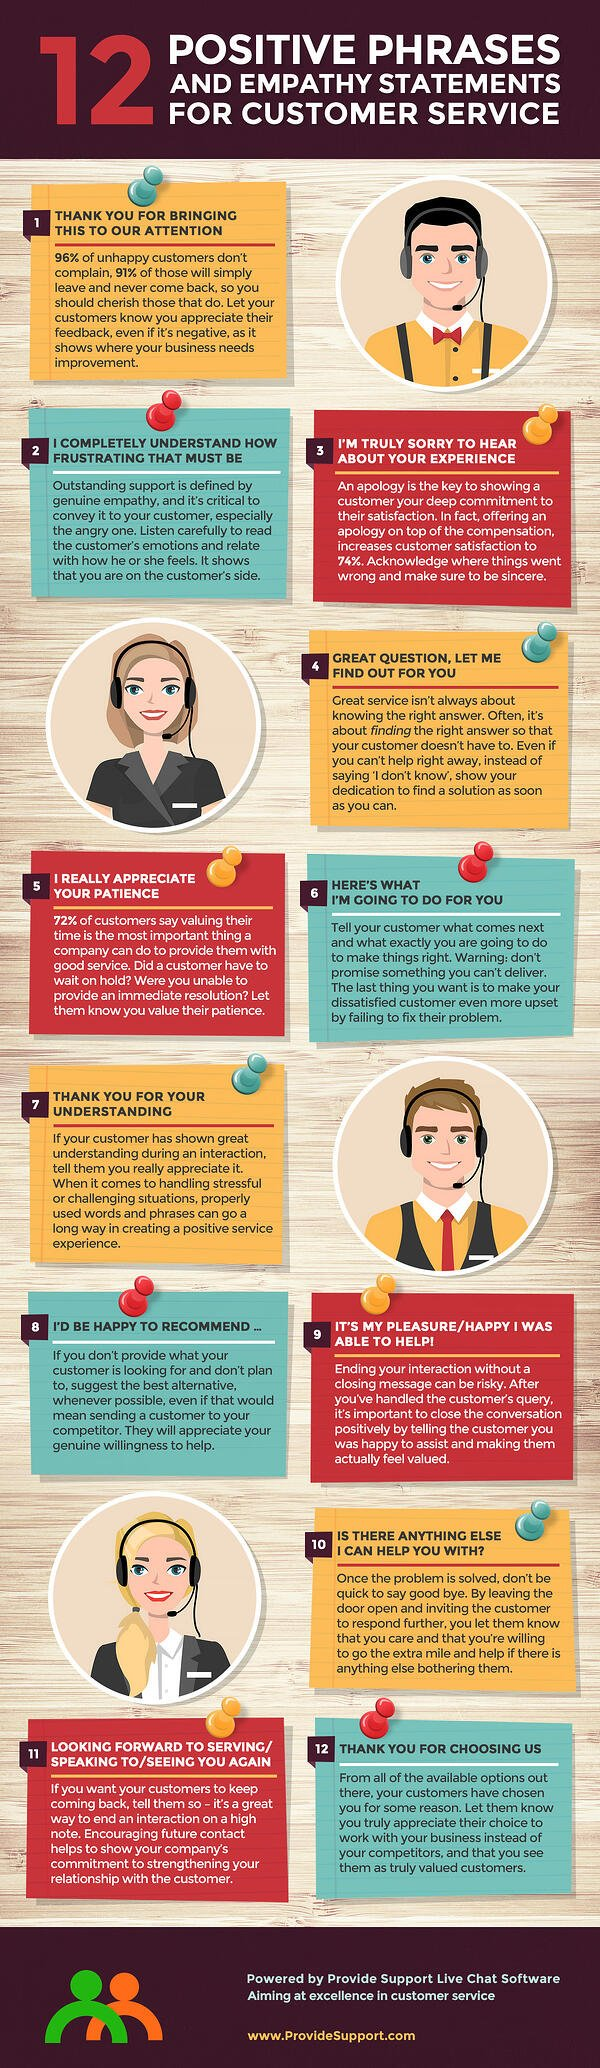 12-Positive-Phrases-and-Empathy-Statements-for-Customer-Service